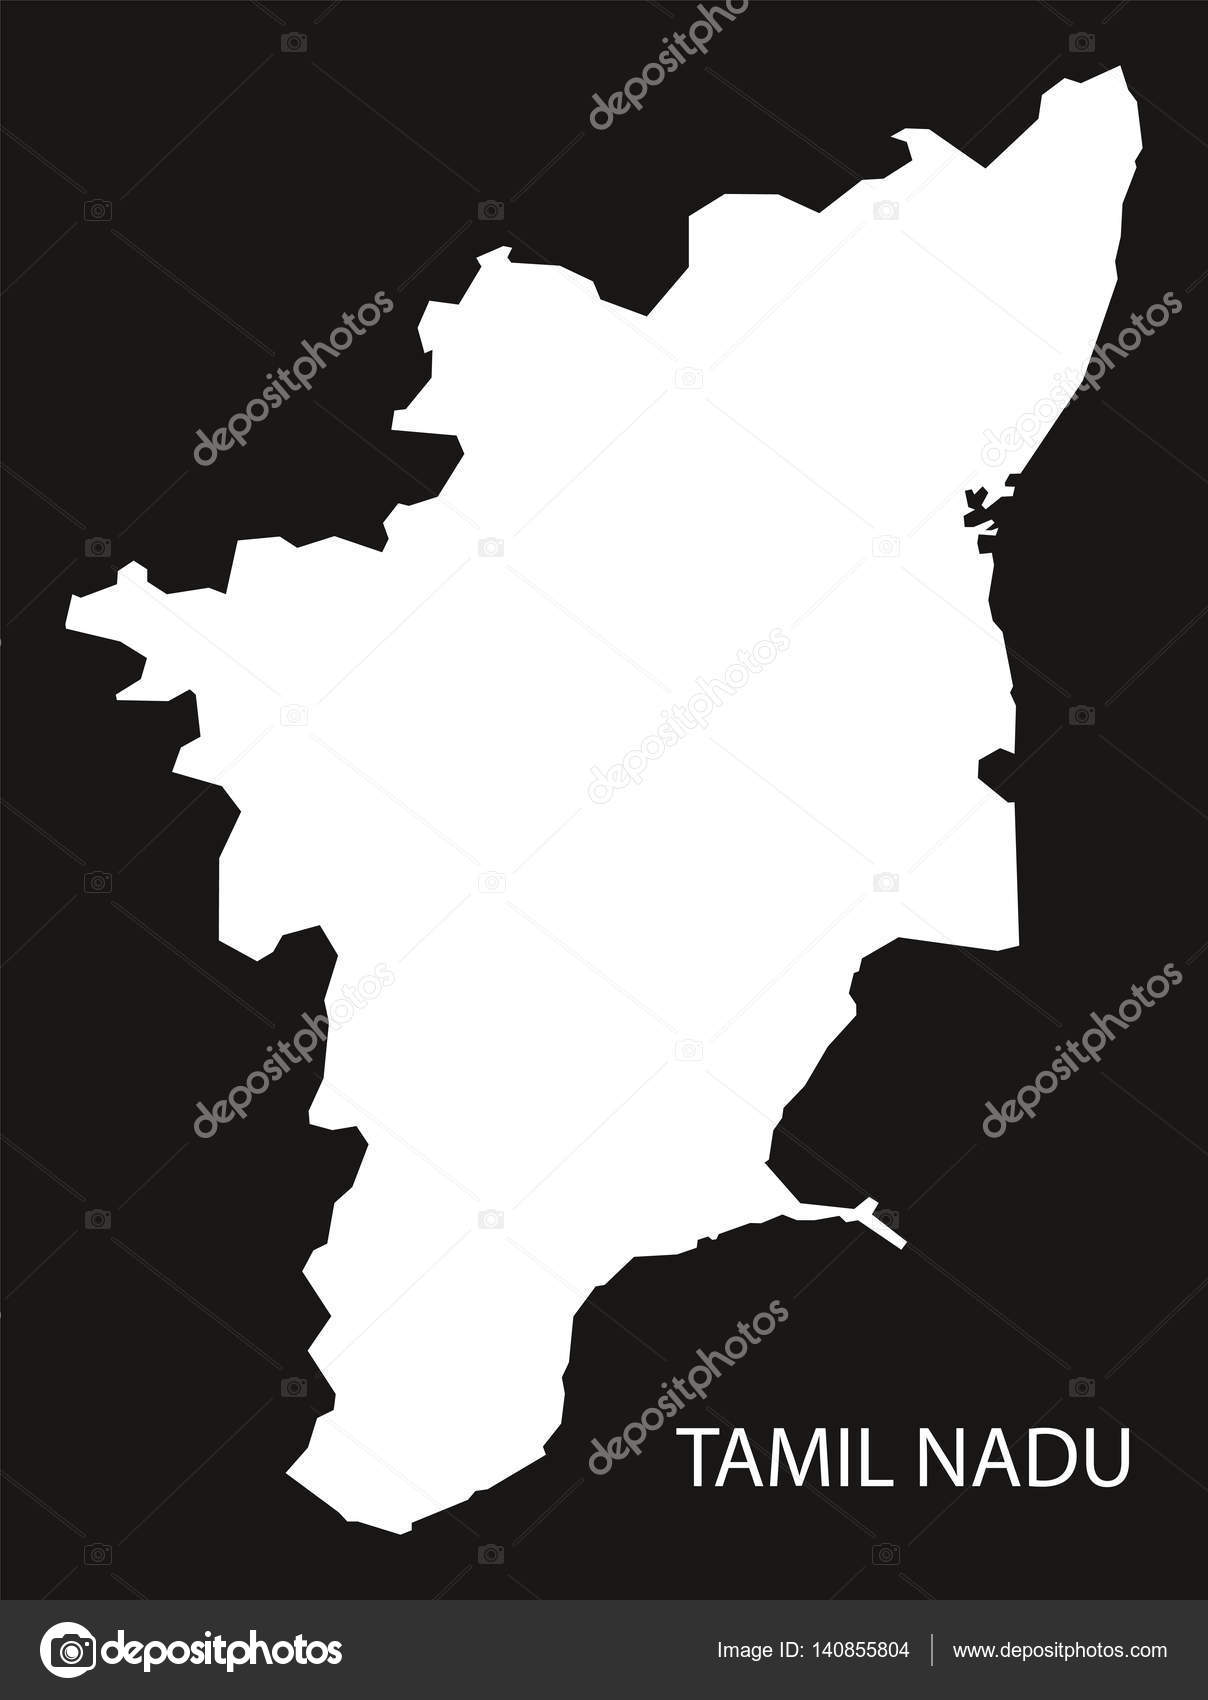 Tamil nadu india map black inverted stock vector ingomenhard tamil nadu india map black inverted stock vector gumiabroncs Image collections